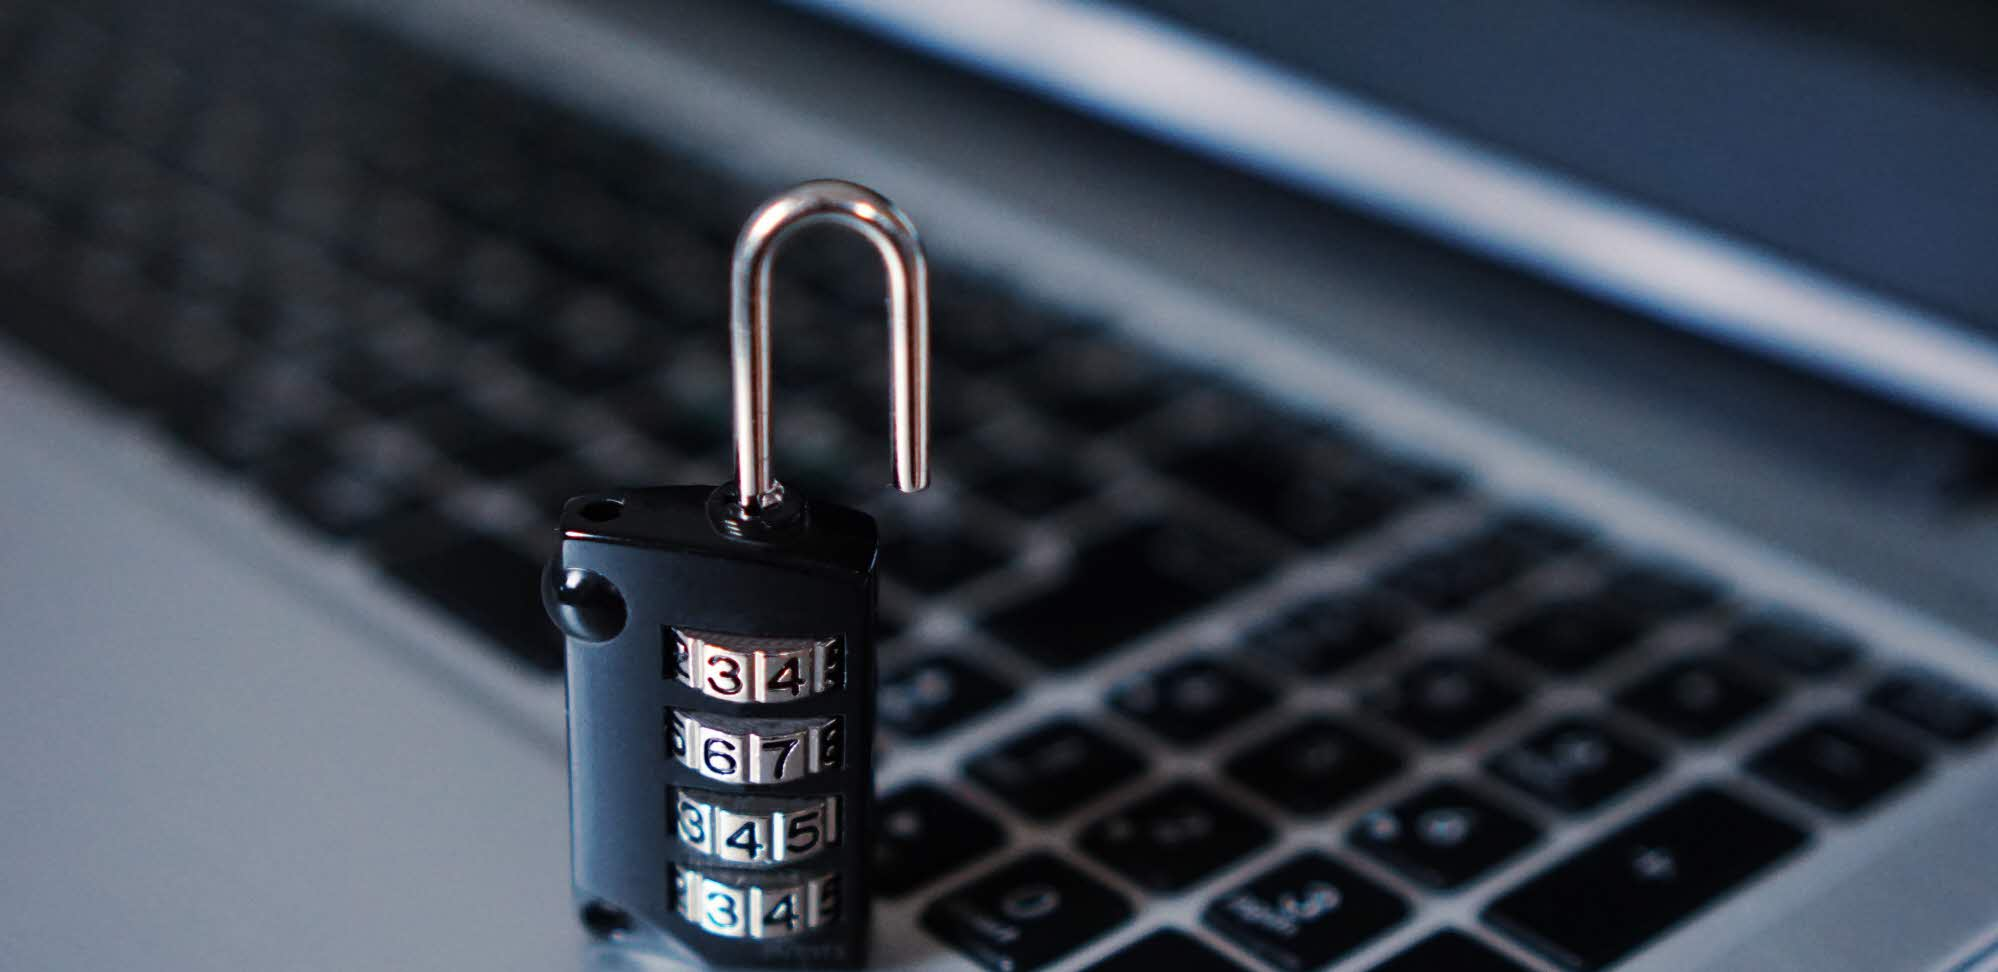 CC0, https://pixabay.com/en/computer-security-padlock-hacker-1591018